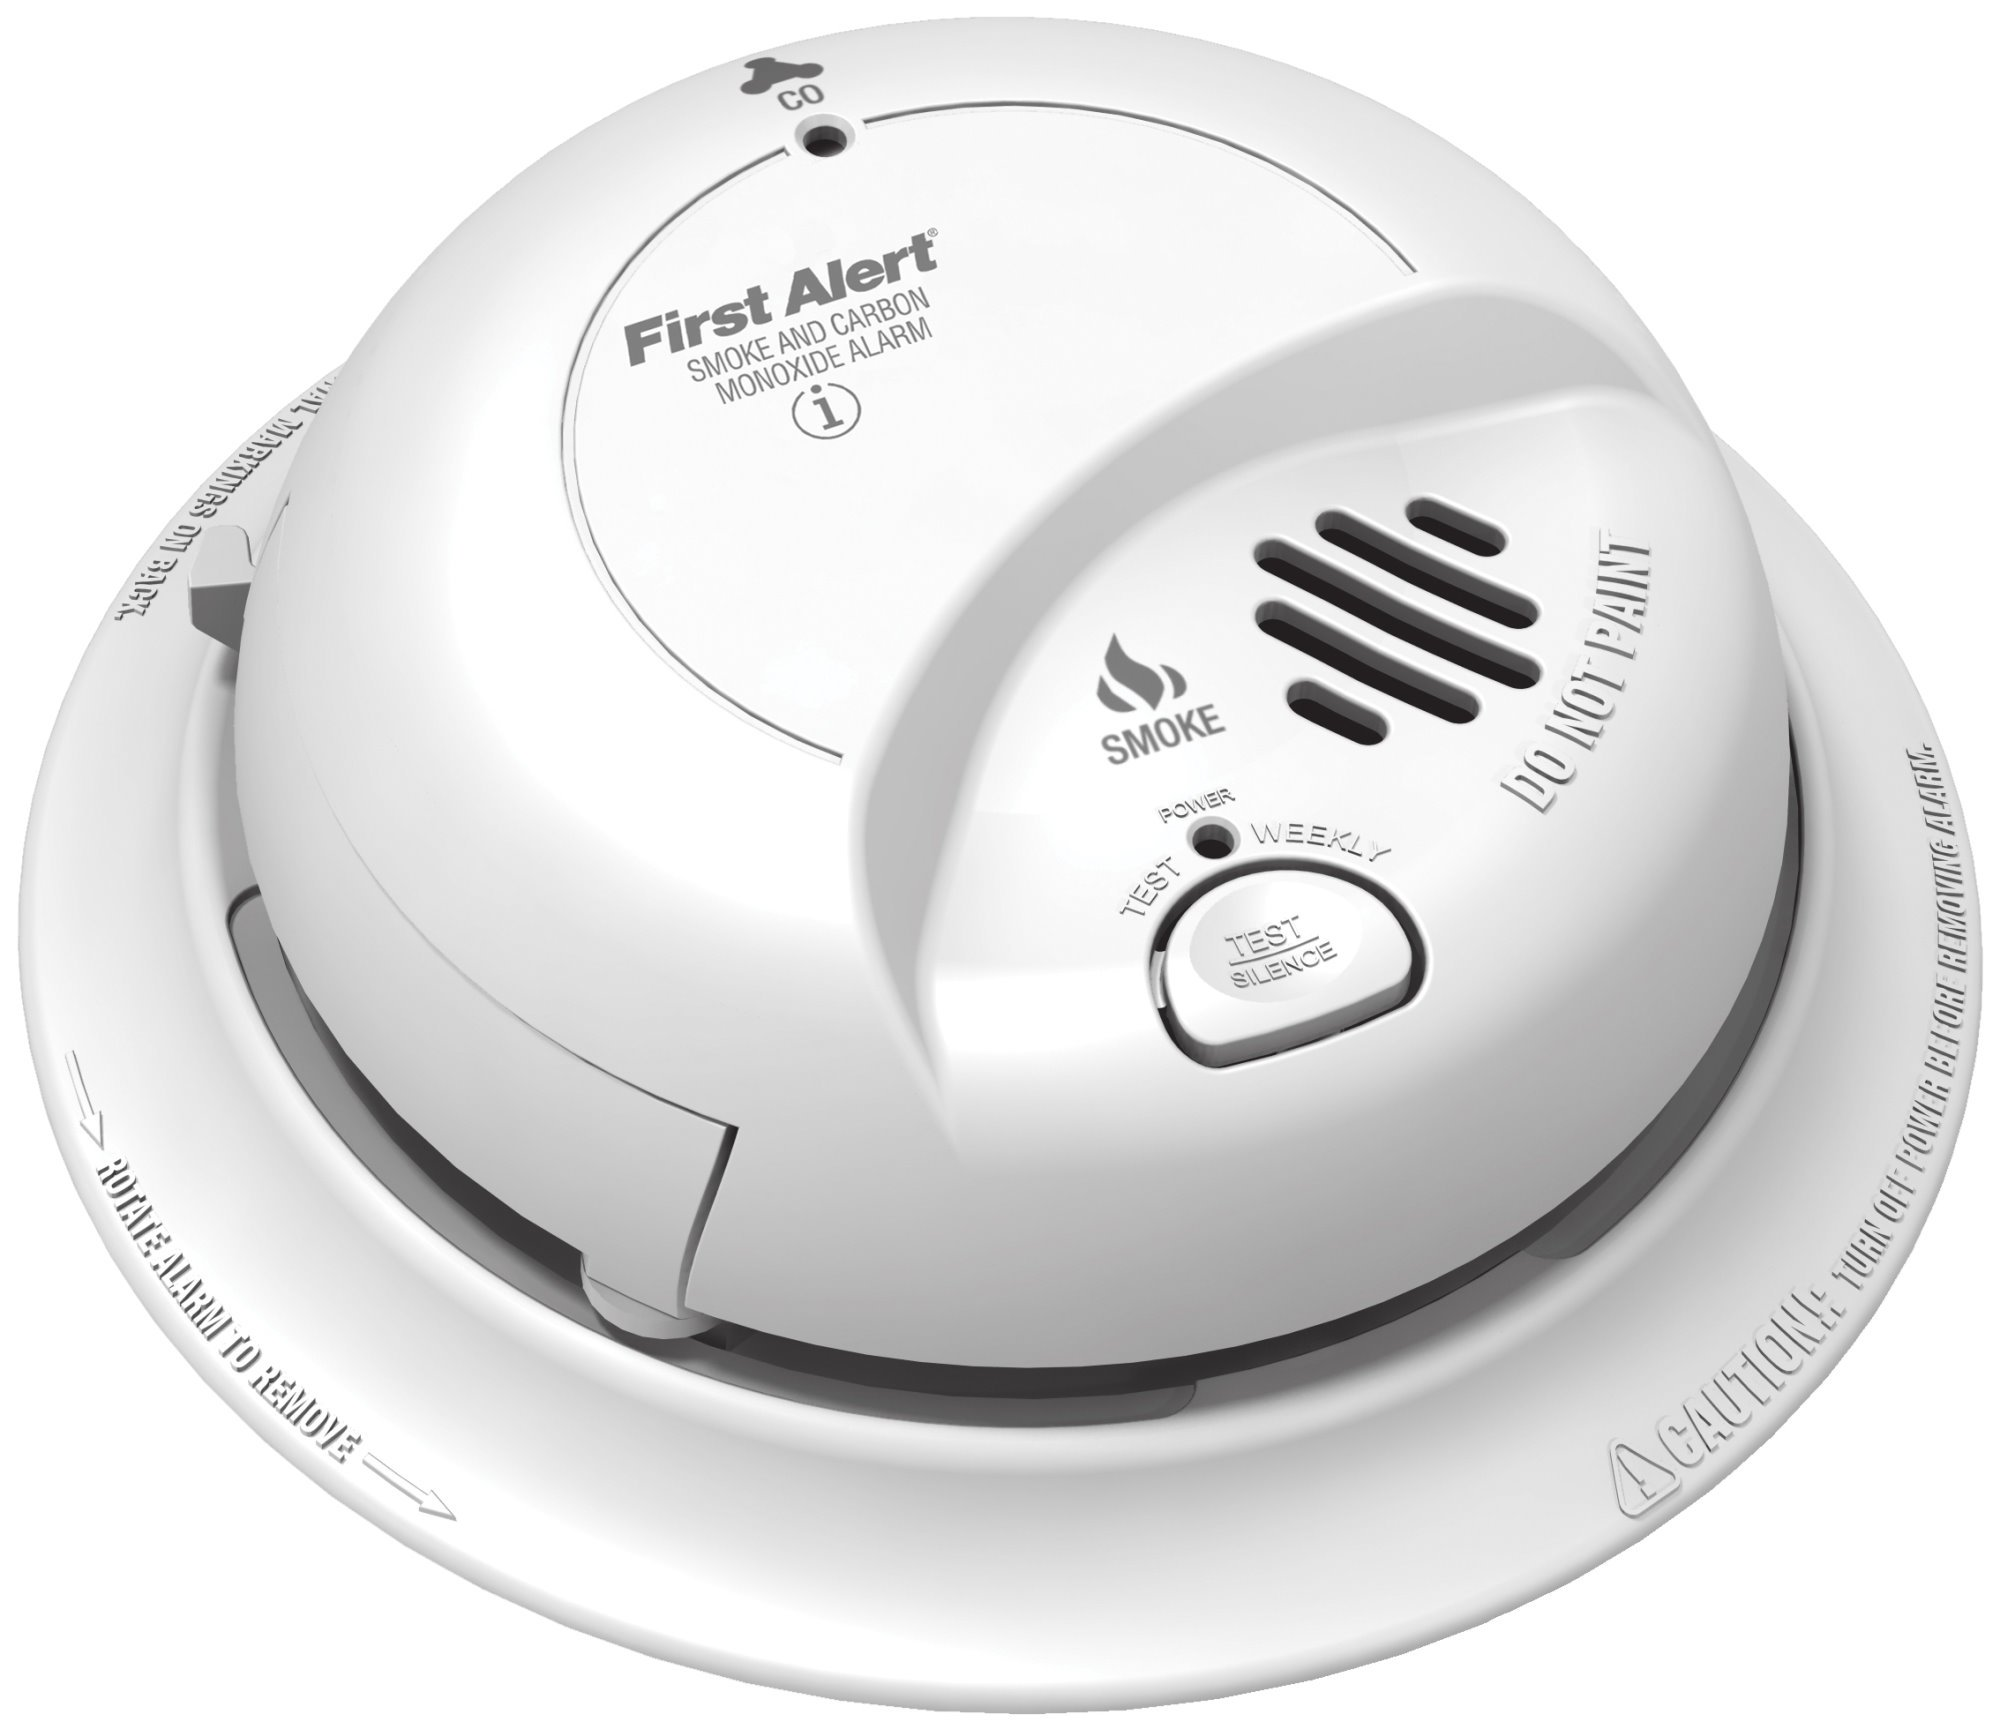 BRK SC9120B Smoke and Carbon Monoxide Alarms and Detectors Lot of 10 by BRK Brands